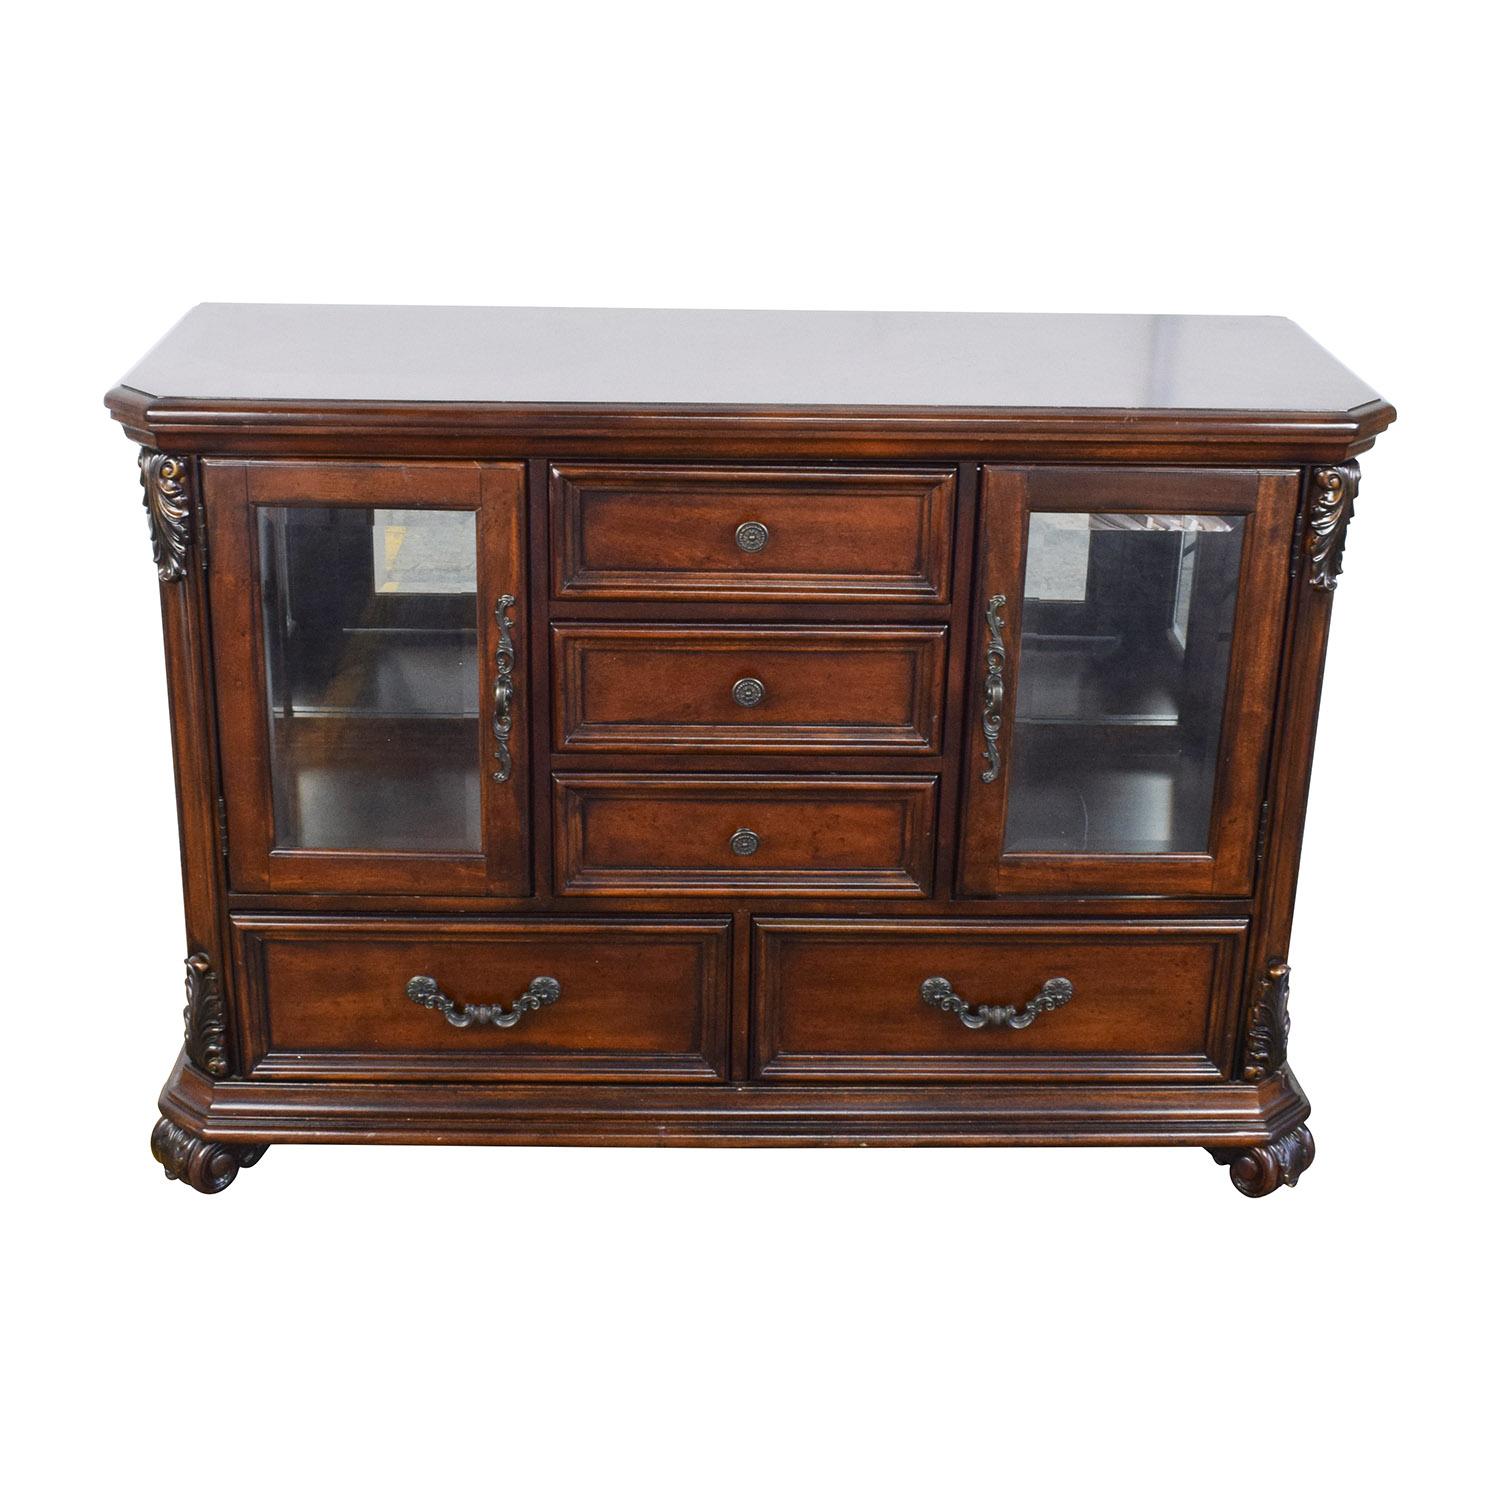 Superieur ... Raymour And Flanigan Raymour U0026 Flanigan Wood Bar With Glass Display Case  Second ...